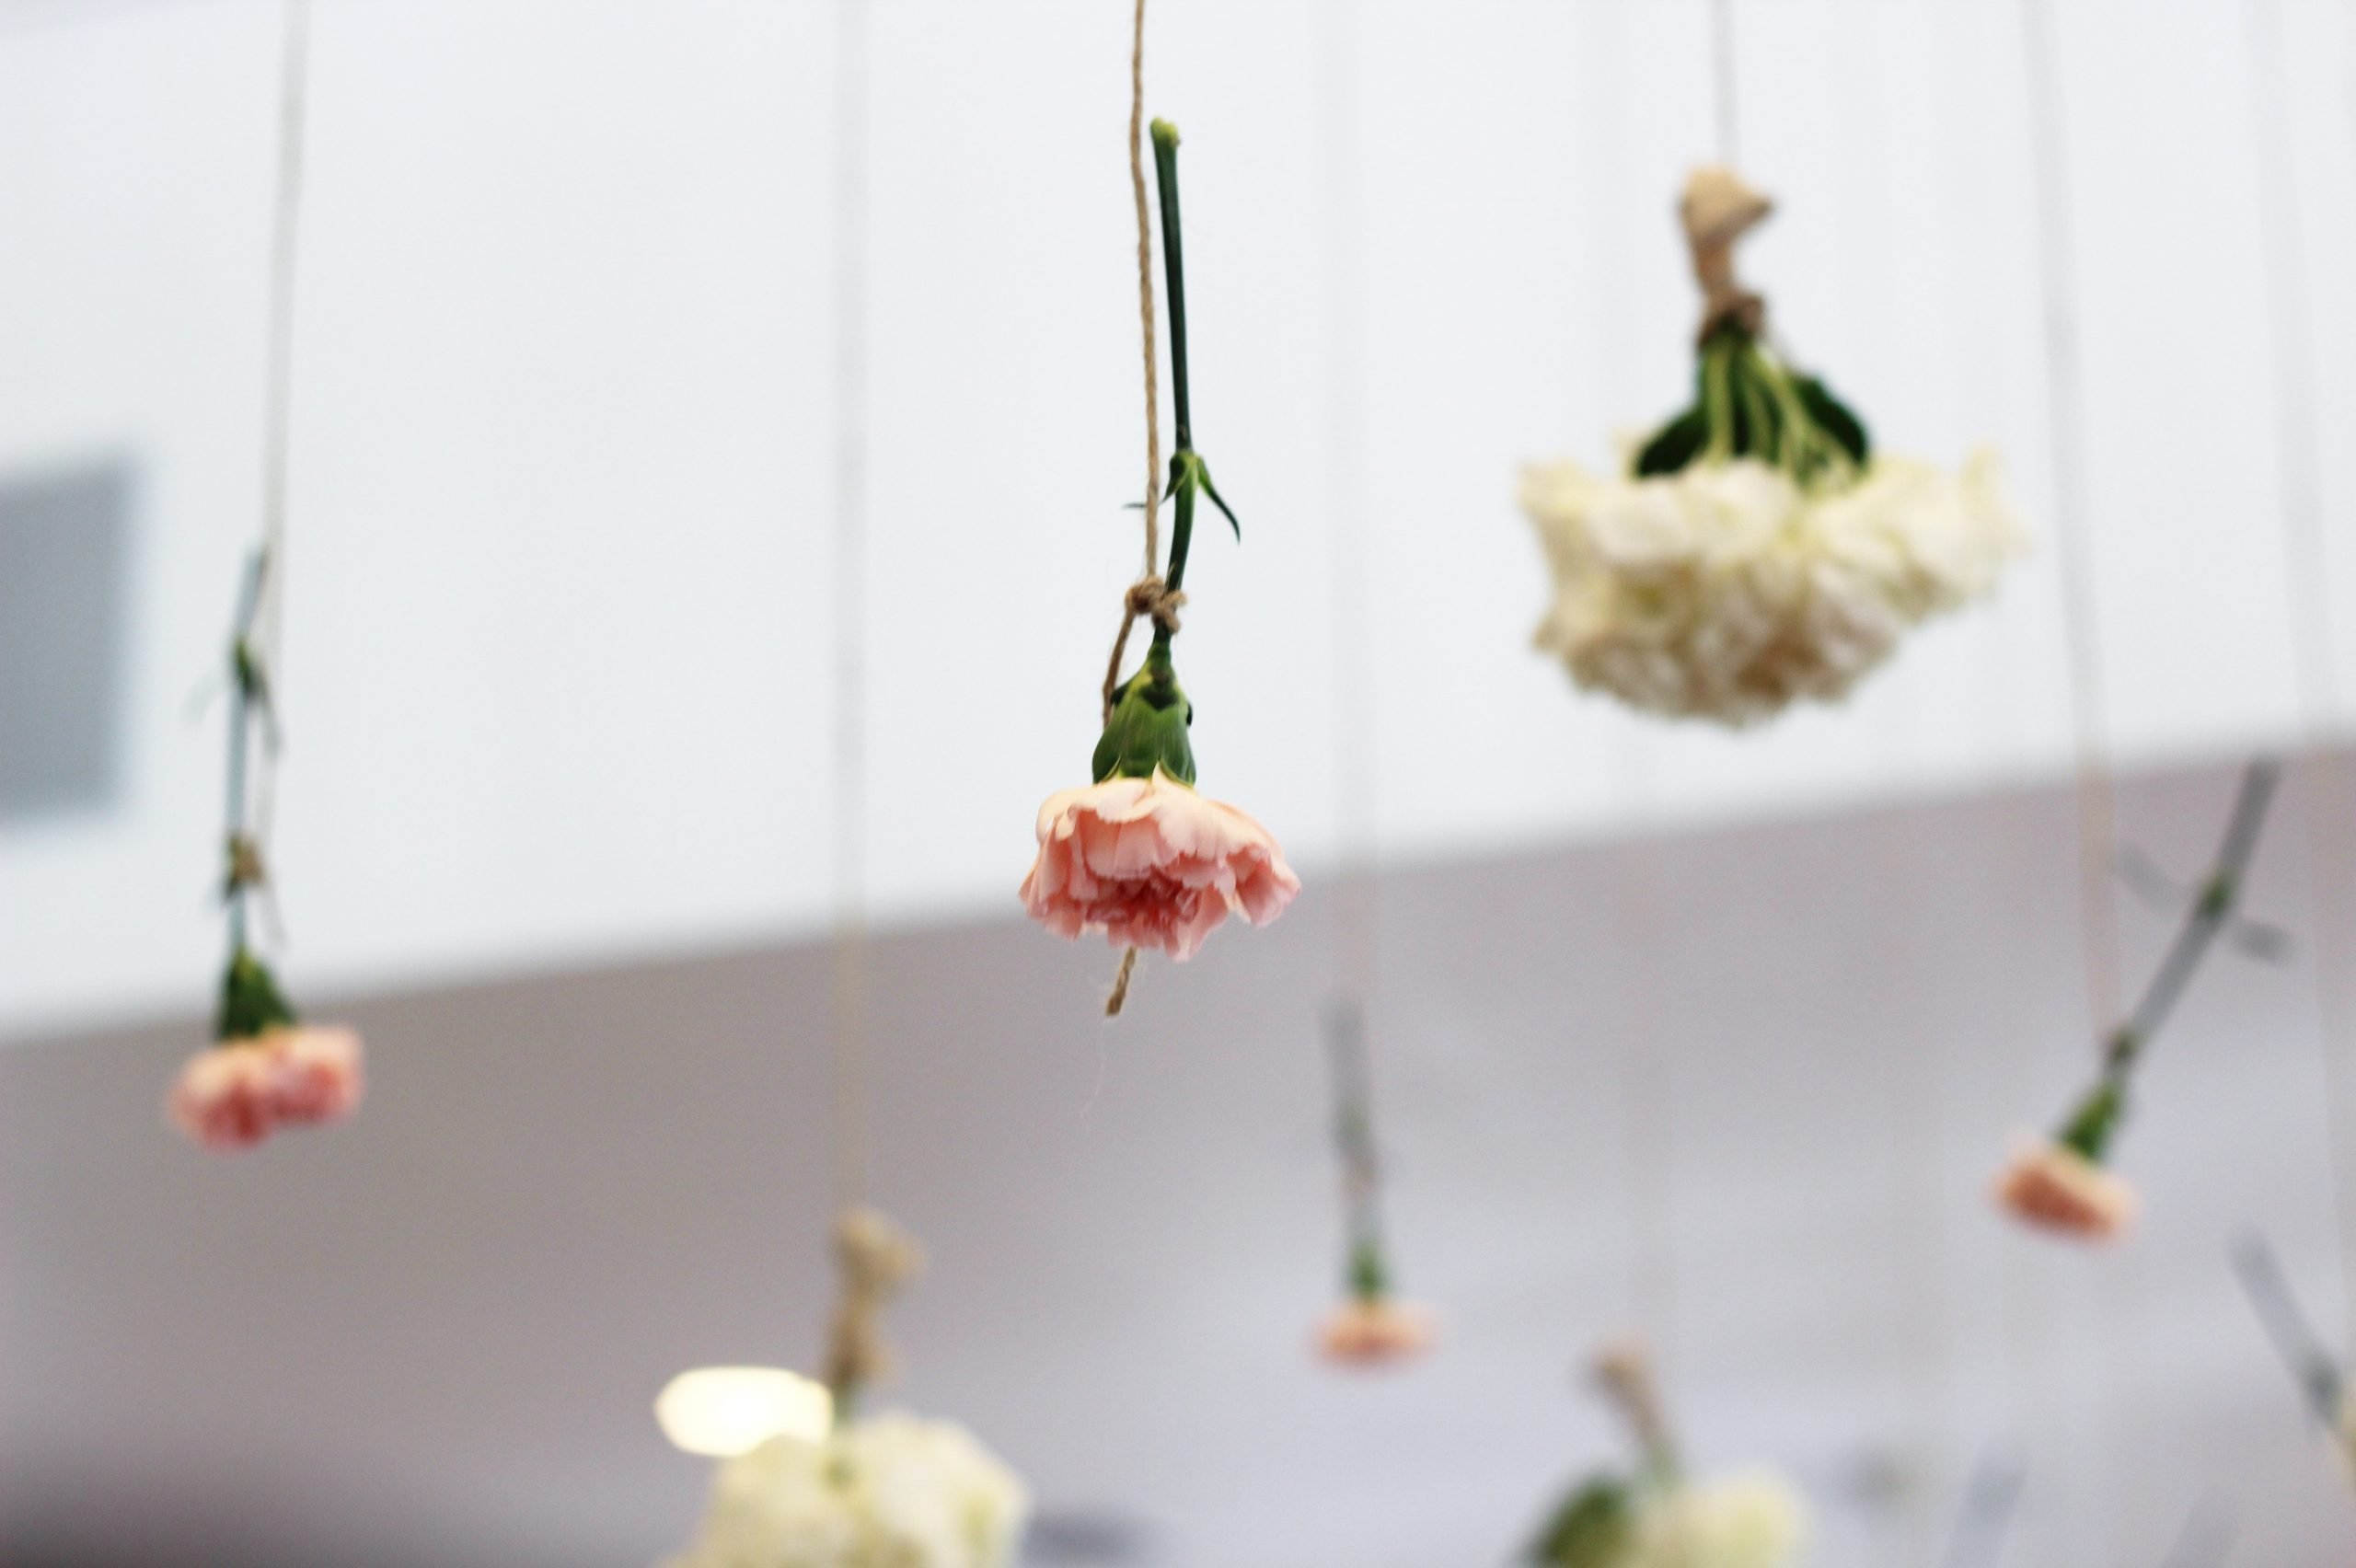 Blooms by HEB carnations in the air